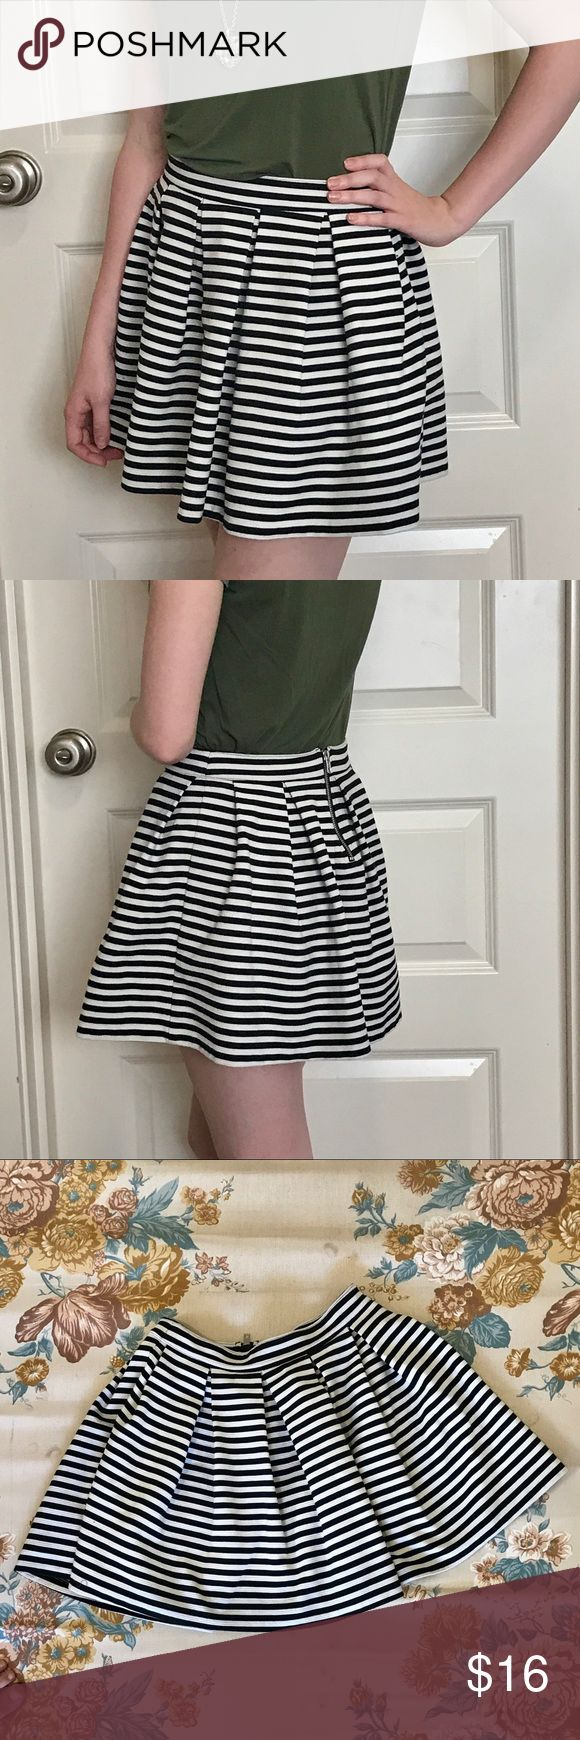 Bethany Mota striped pleated skirt Fun and flirty skater skirt from Aeropostale's Bethany Mota collection! Black and white stripes with pleats all around and an exposed supper closure in back. Falls upper mid thigh depending on where you choose to have it sit on your waist. Aeropostale Skirts Circle & Skater